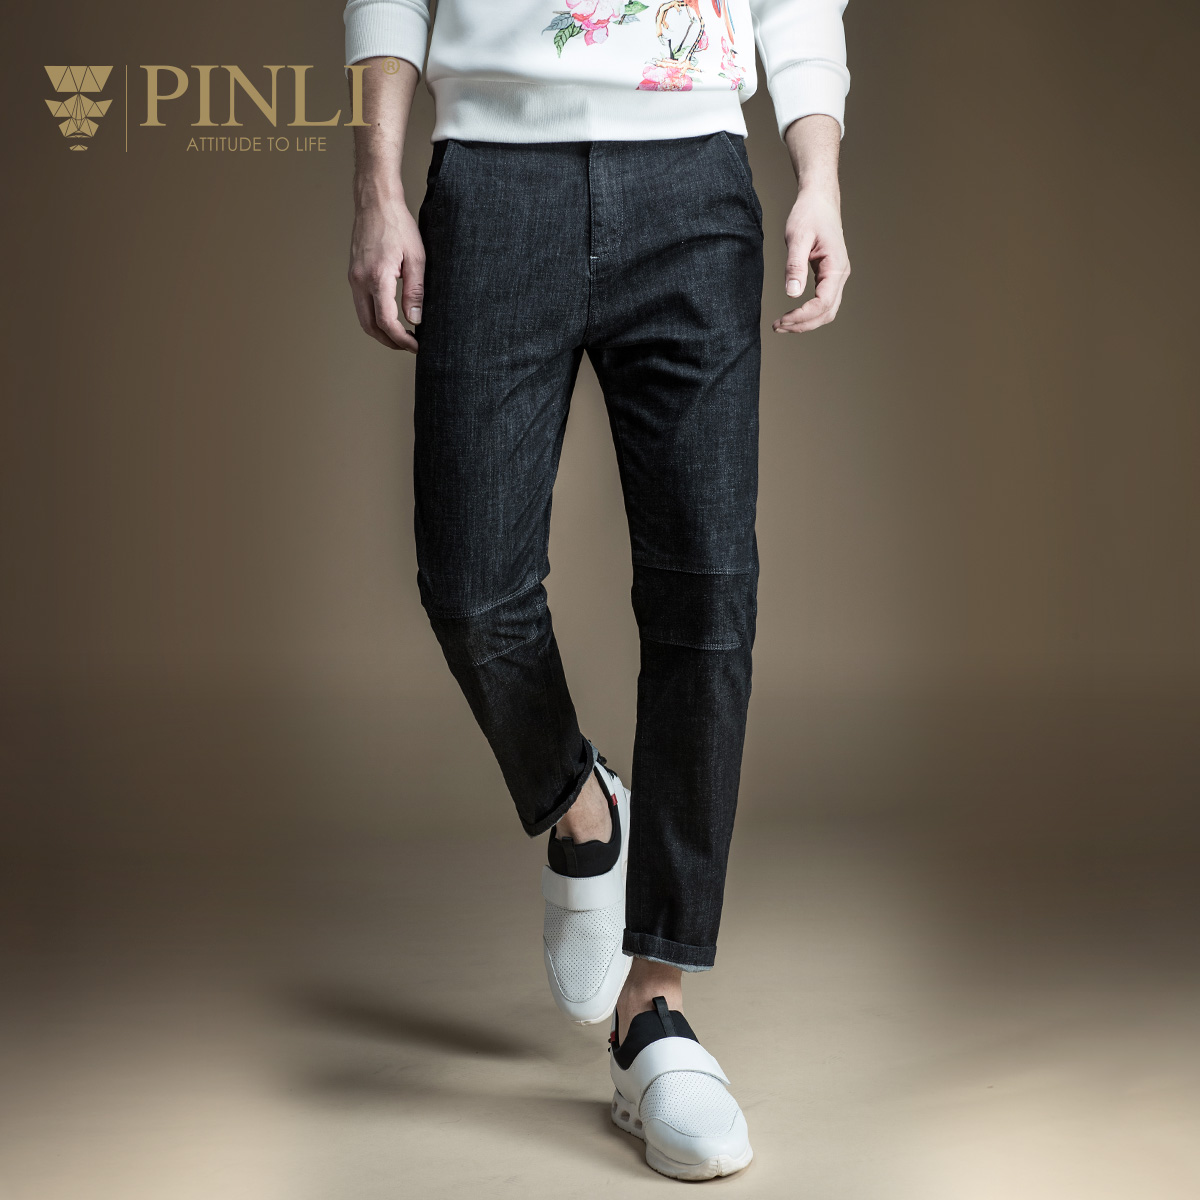 Pinli New Arrival Acetate Zipper Fly Midweight Pencil Pants Mid 2017 Spring New Slim Jeans Pants